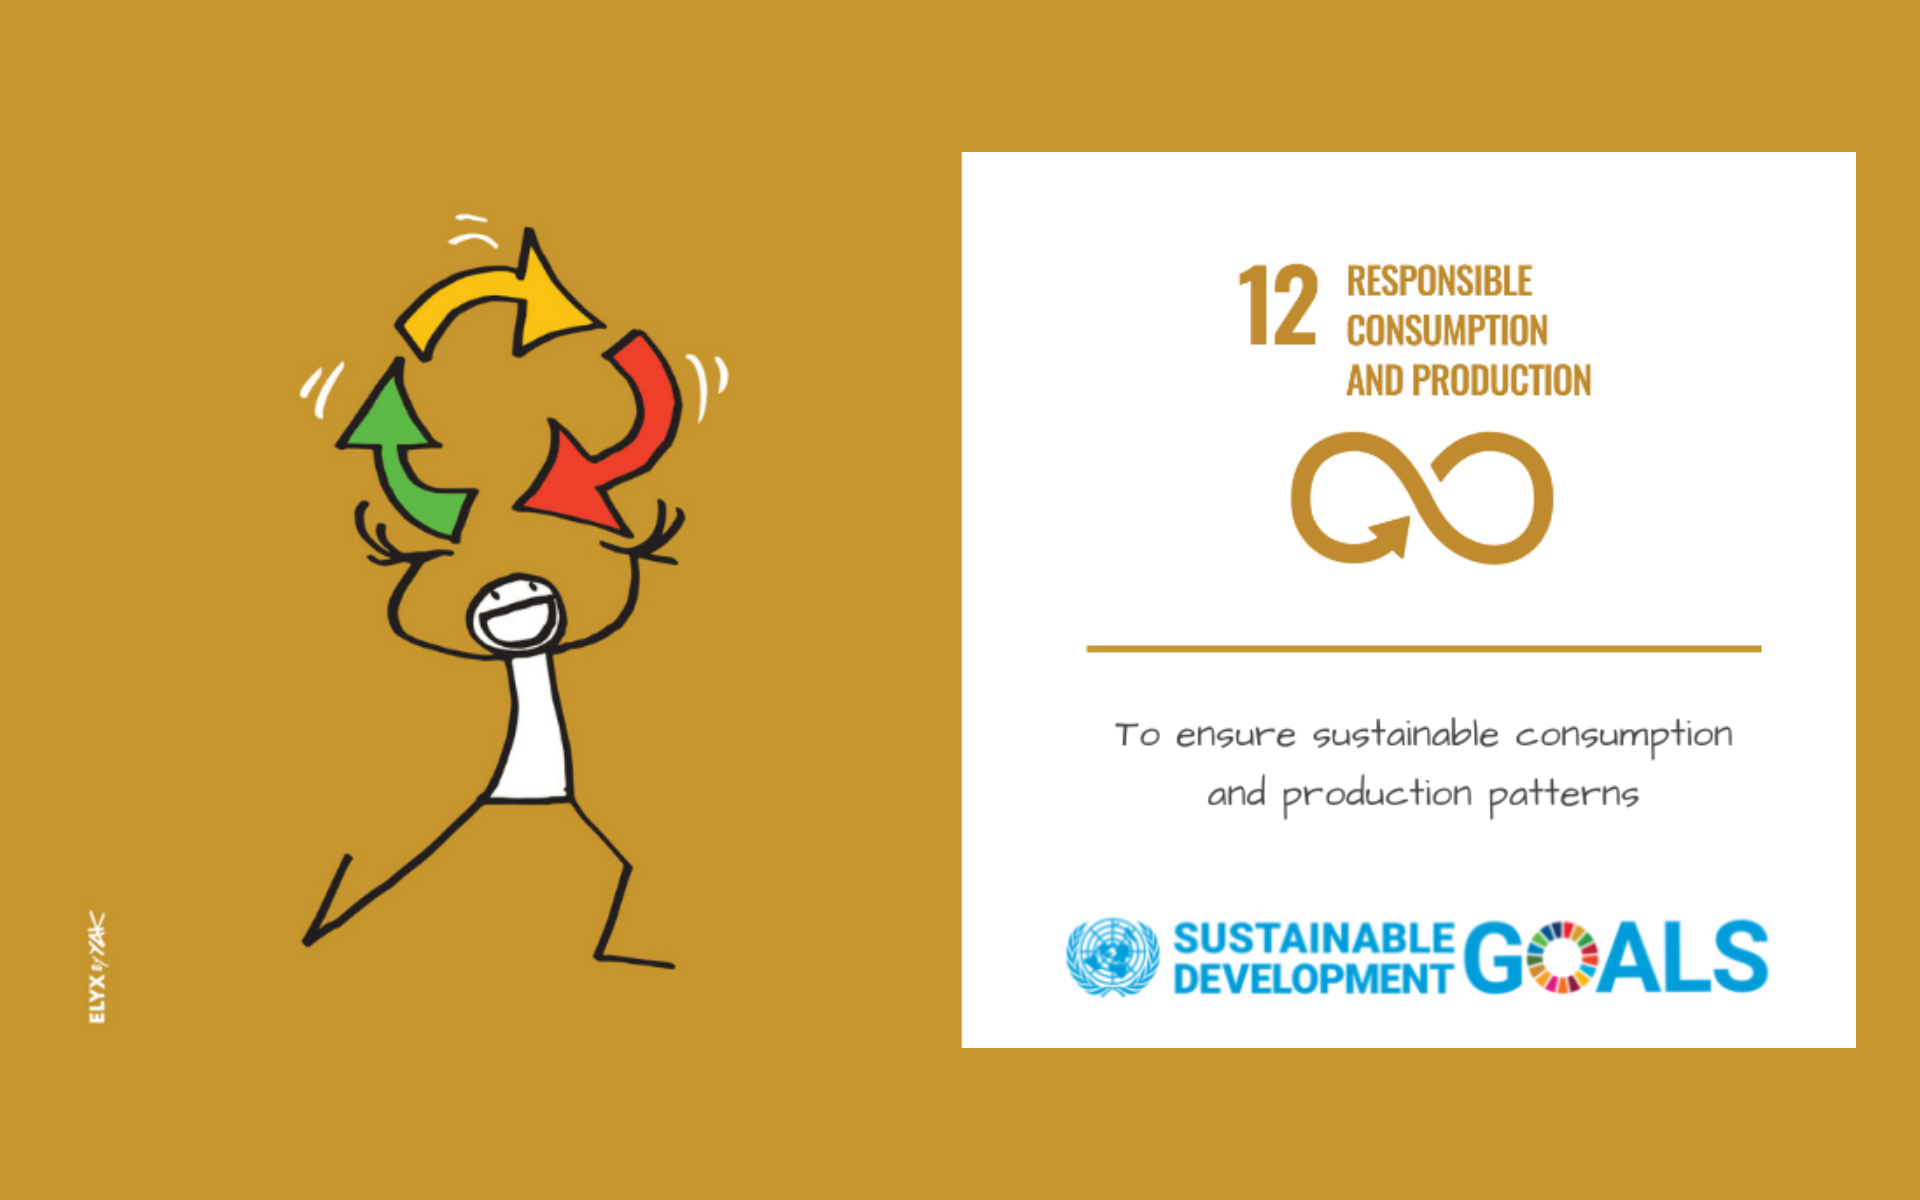 Australia Has An Opportunity to Dramatically Improve on Sustainable Development Goal 12